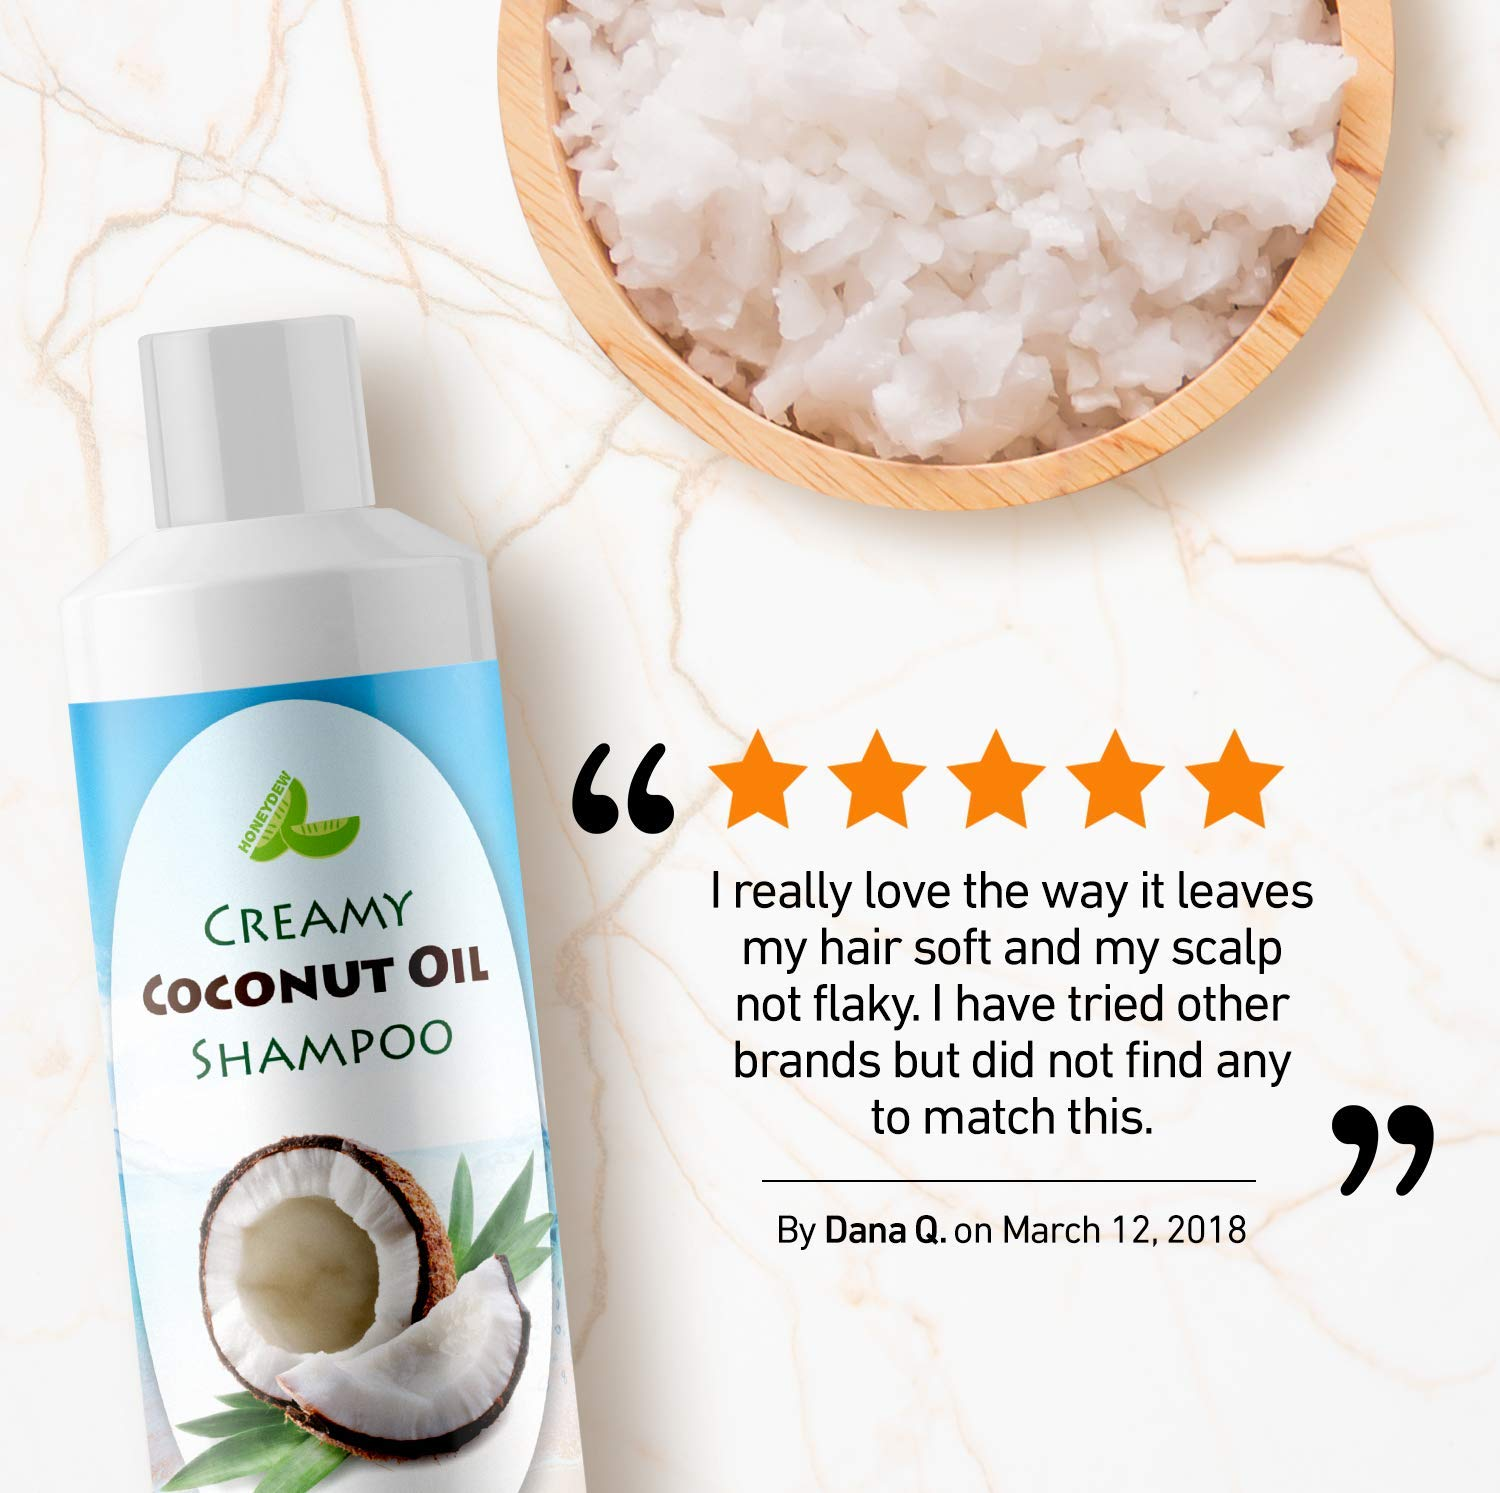 All Natural Coconut Oil Shampoo for Hair Growth - Hair Regrowth Treatment for Men and Women - Best Sulfate Free Moisturizing Shampoo - Safe for Color Treated Hair - Nourishing Hair and Scalp Treatment by Honeydew (Image #4)